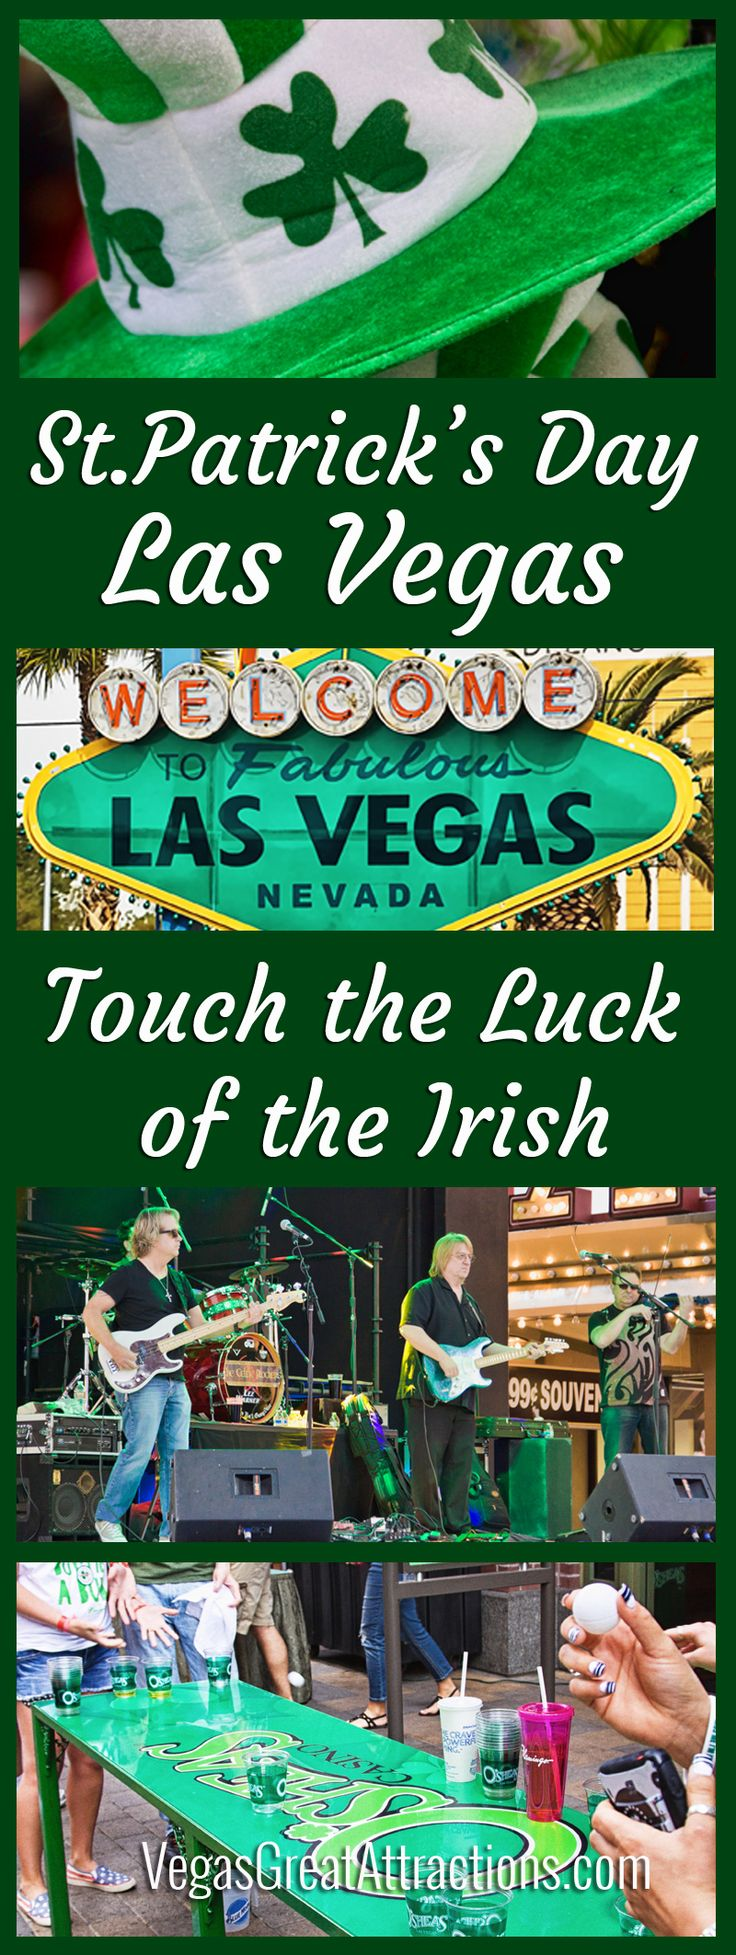 St. Patrick's Day Las Vegas - Touch the Luck of the Irish